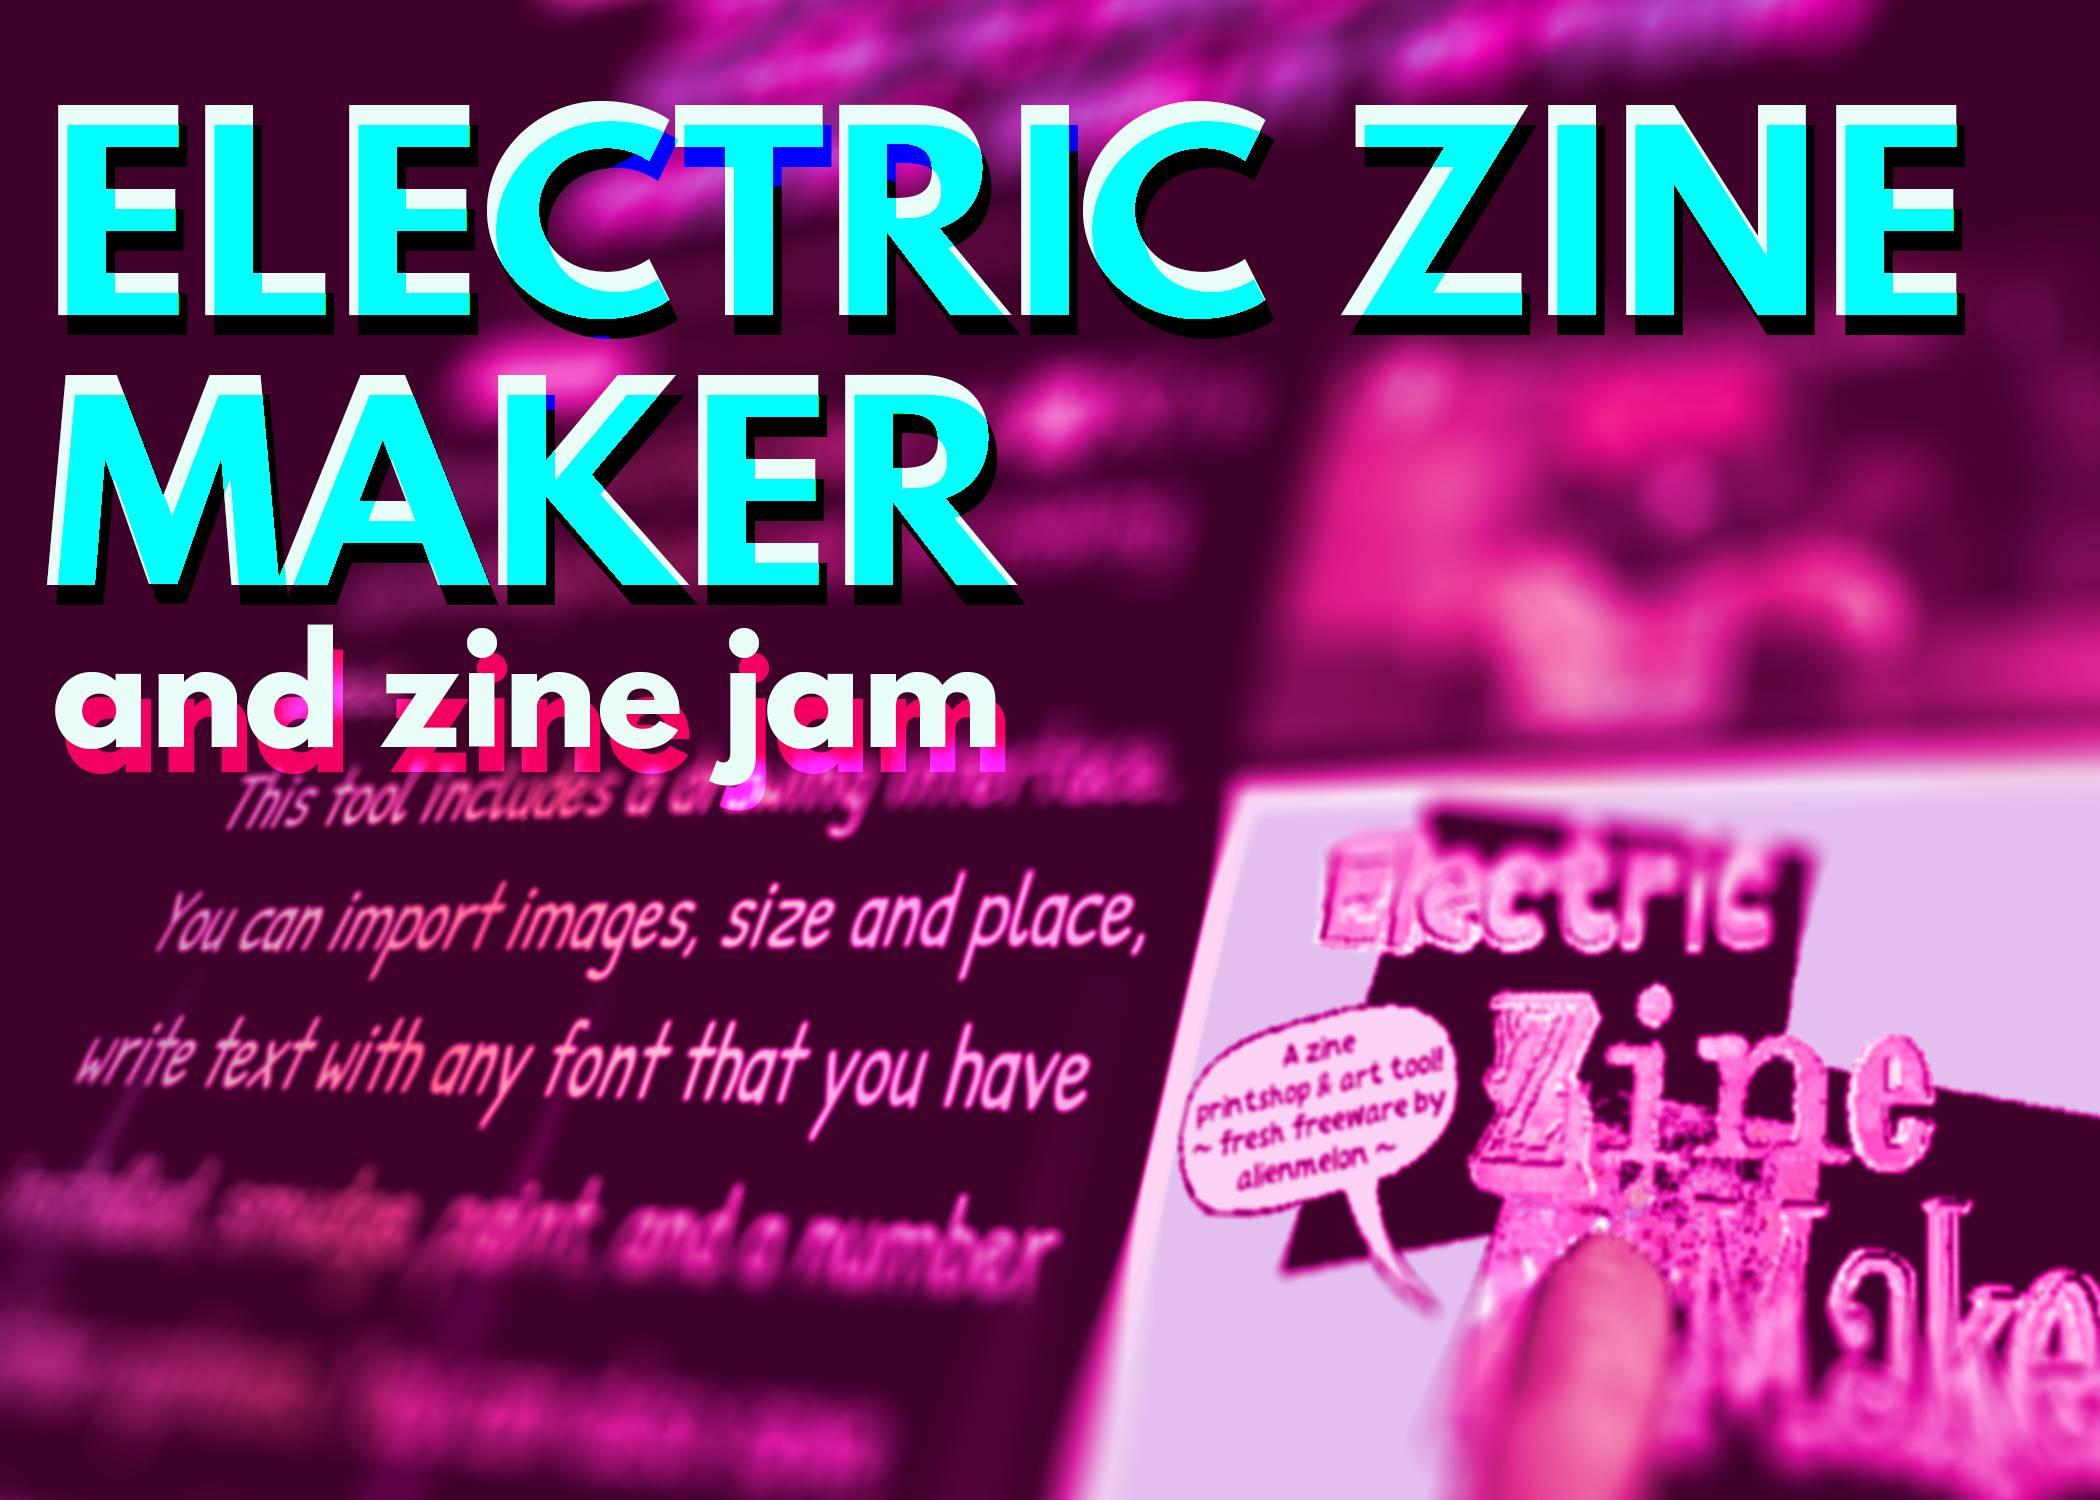 Electric Zine Maker and zine jam